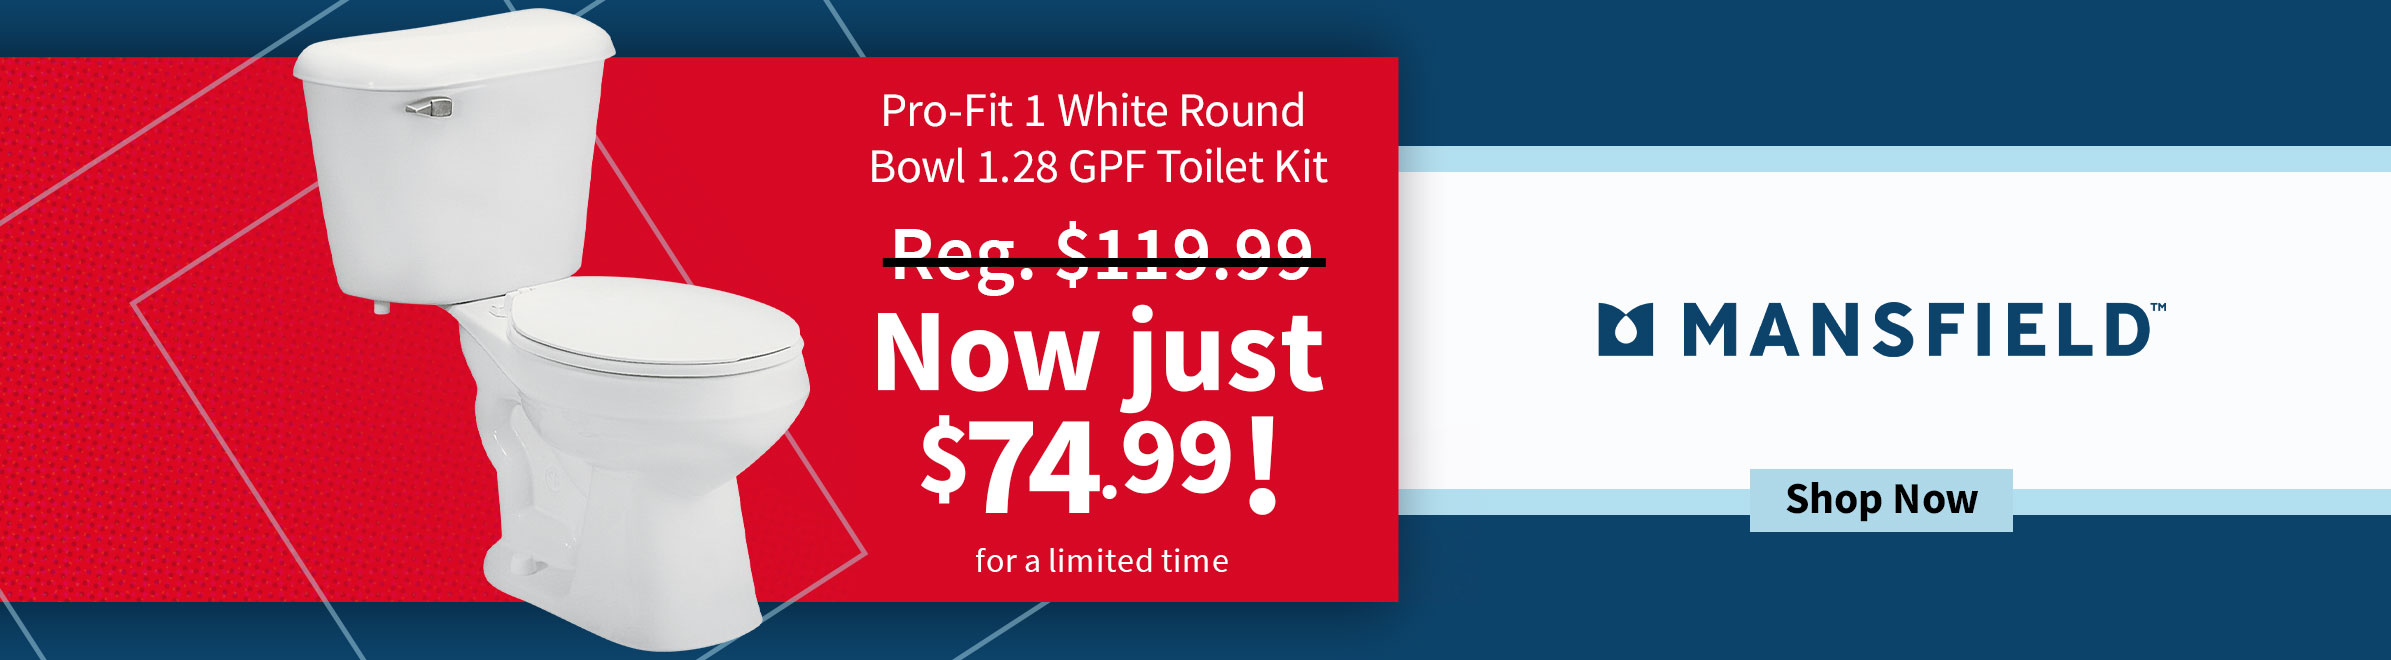 Mansfield Pro-Fit 1 White Round Bowl 1.28 GPF Toilet Kit